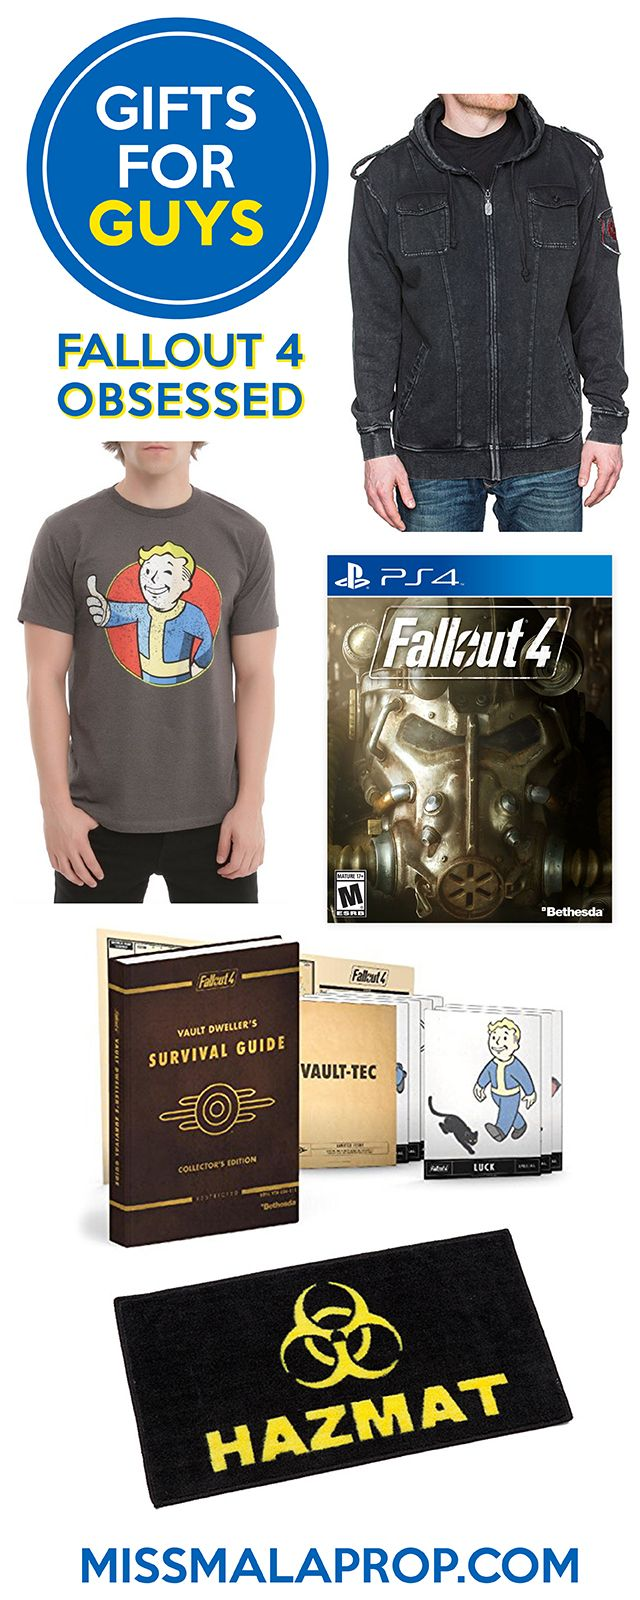 Gifts For Guys: Fallout 4 Obsessed